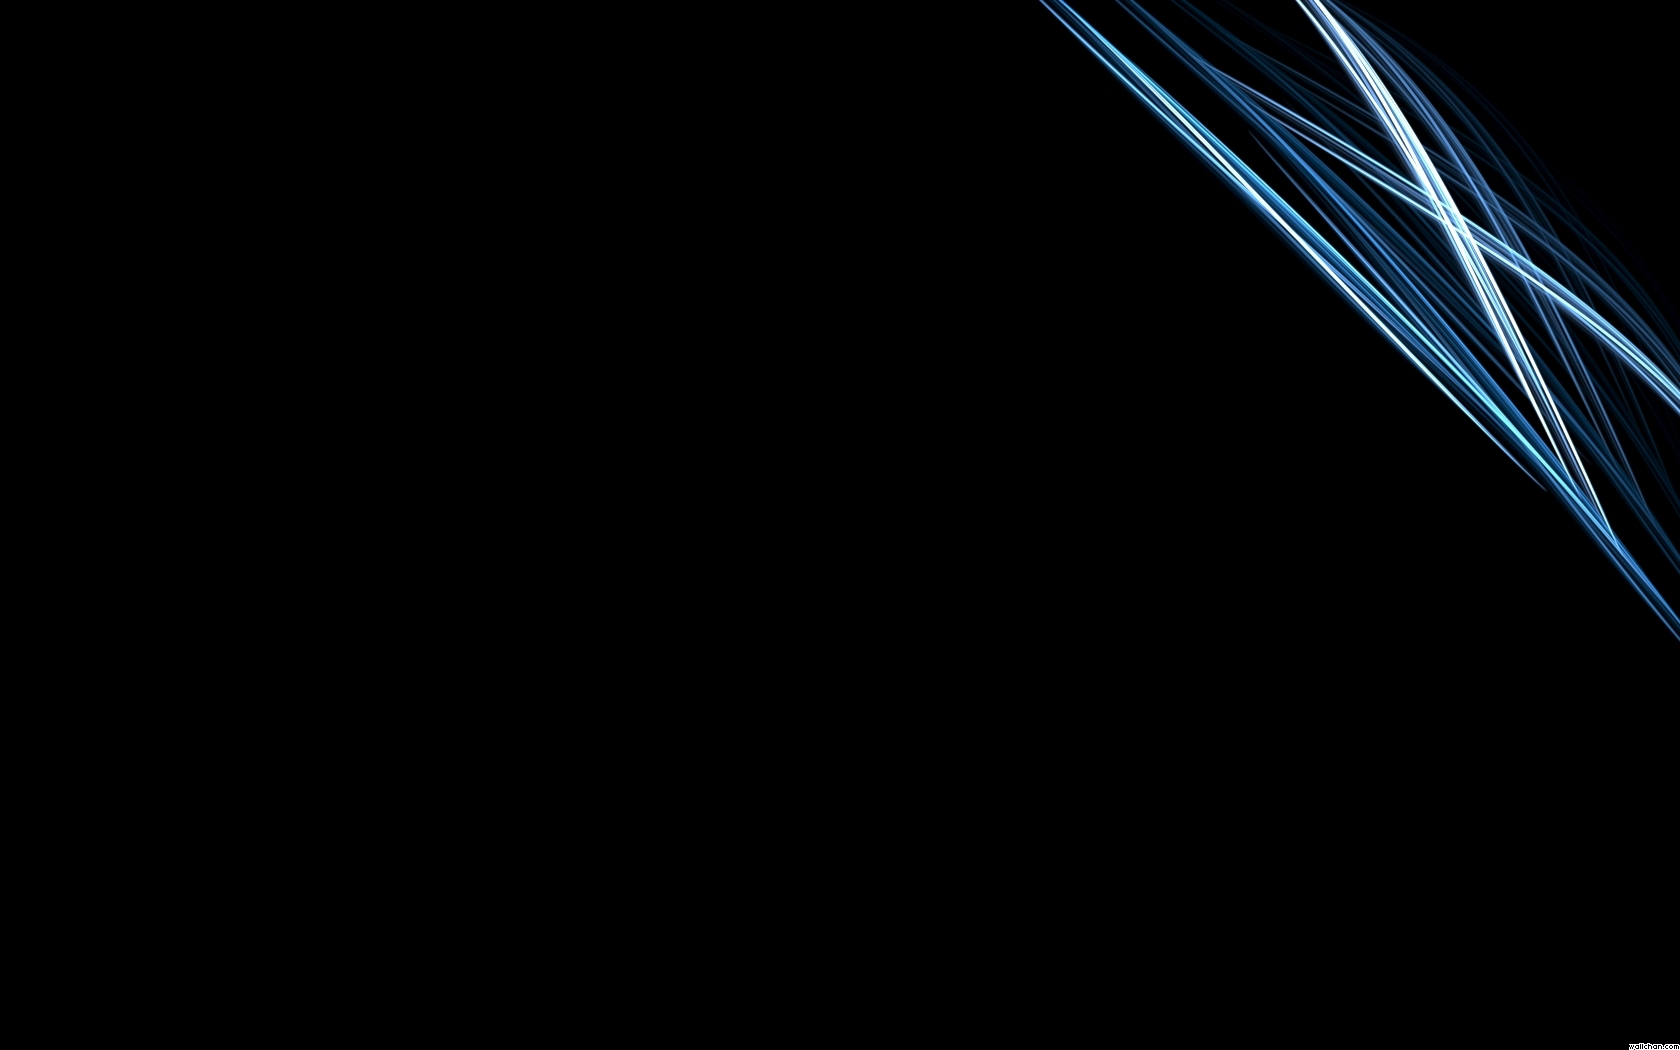 Black Blue Abstract Wallpaper 2597 Hd Wallpapers in Abstract 1680x1050